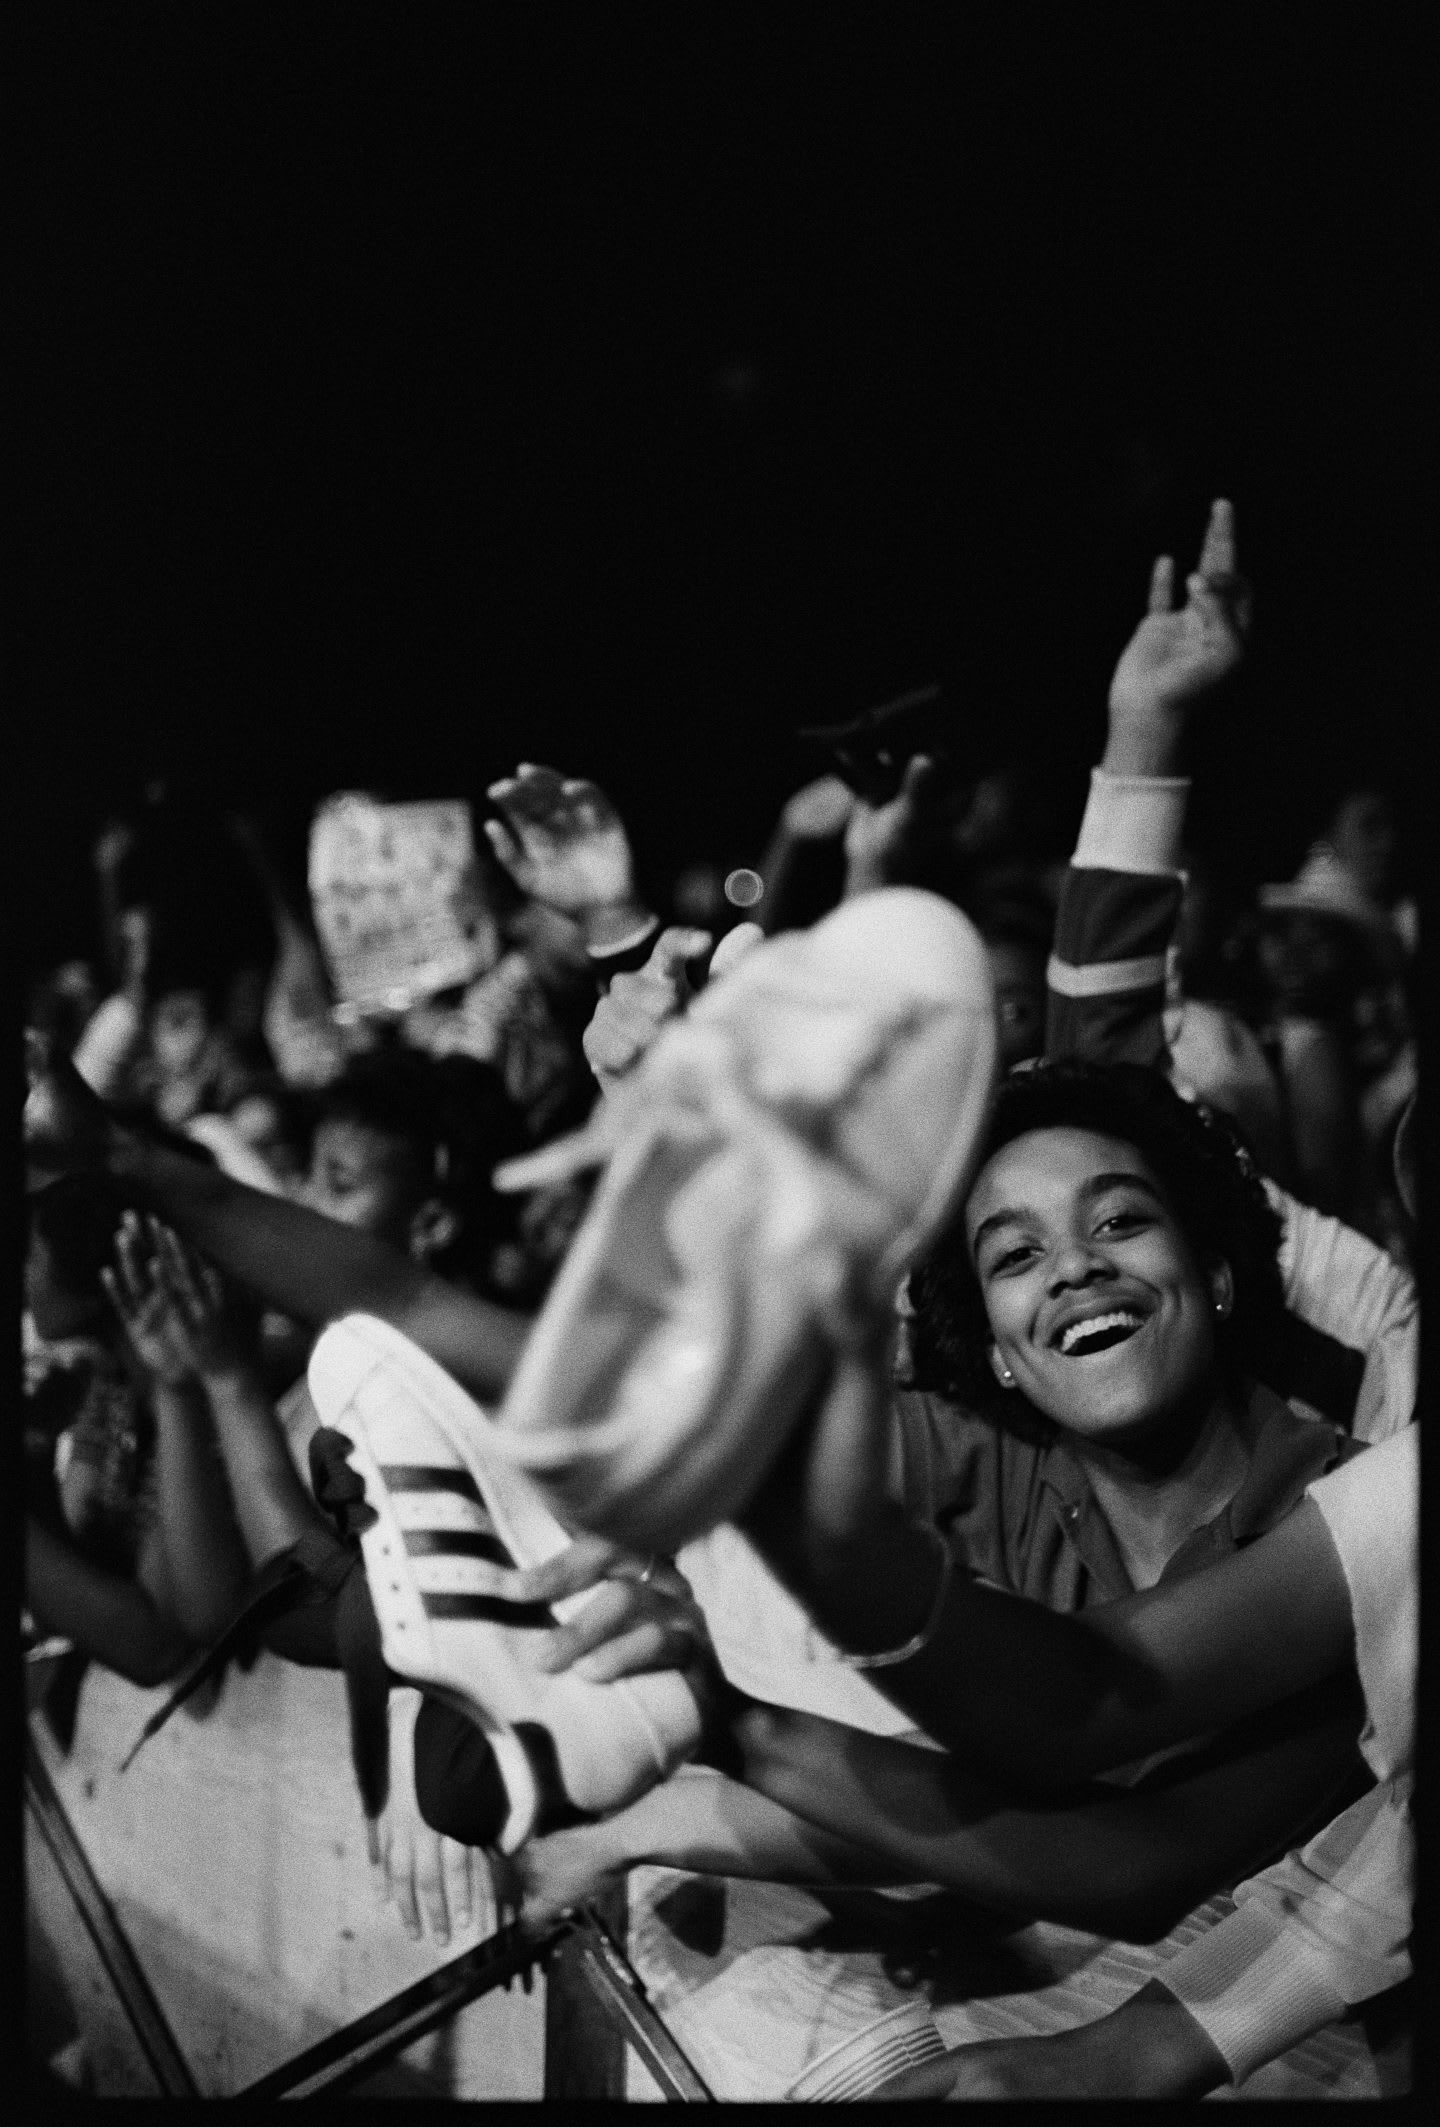 Fans at a Run DMC concert watch the show with their hands in the air and holding up their adidas Superstars.